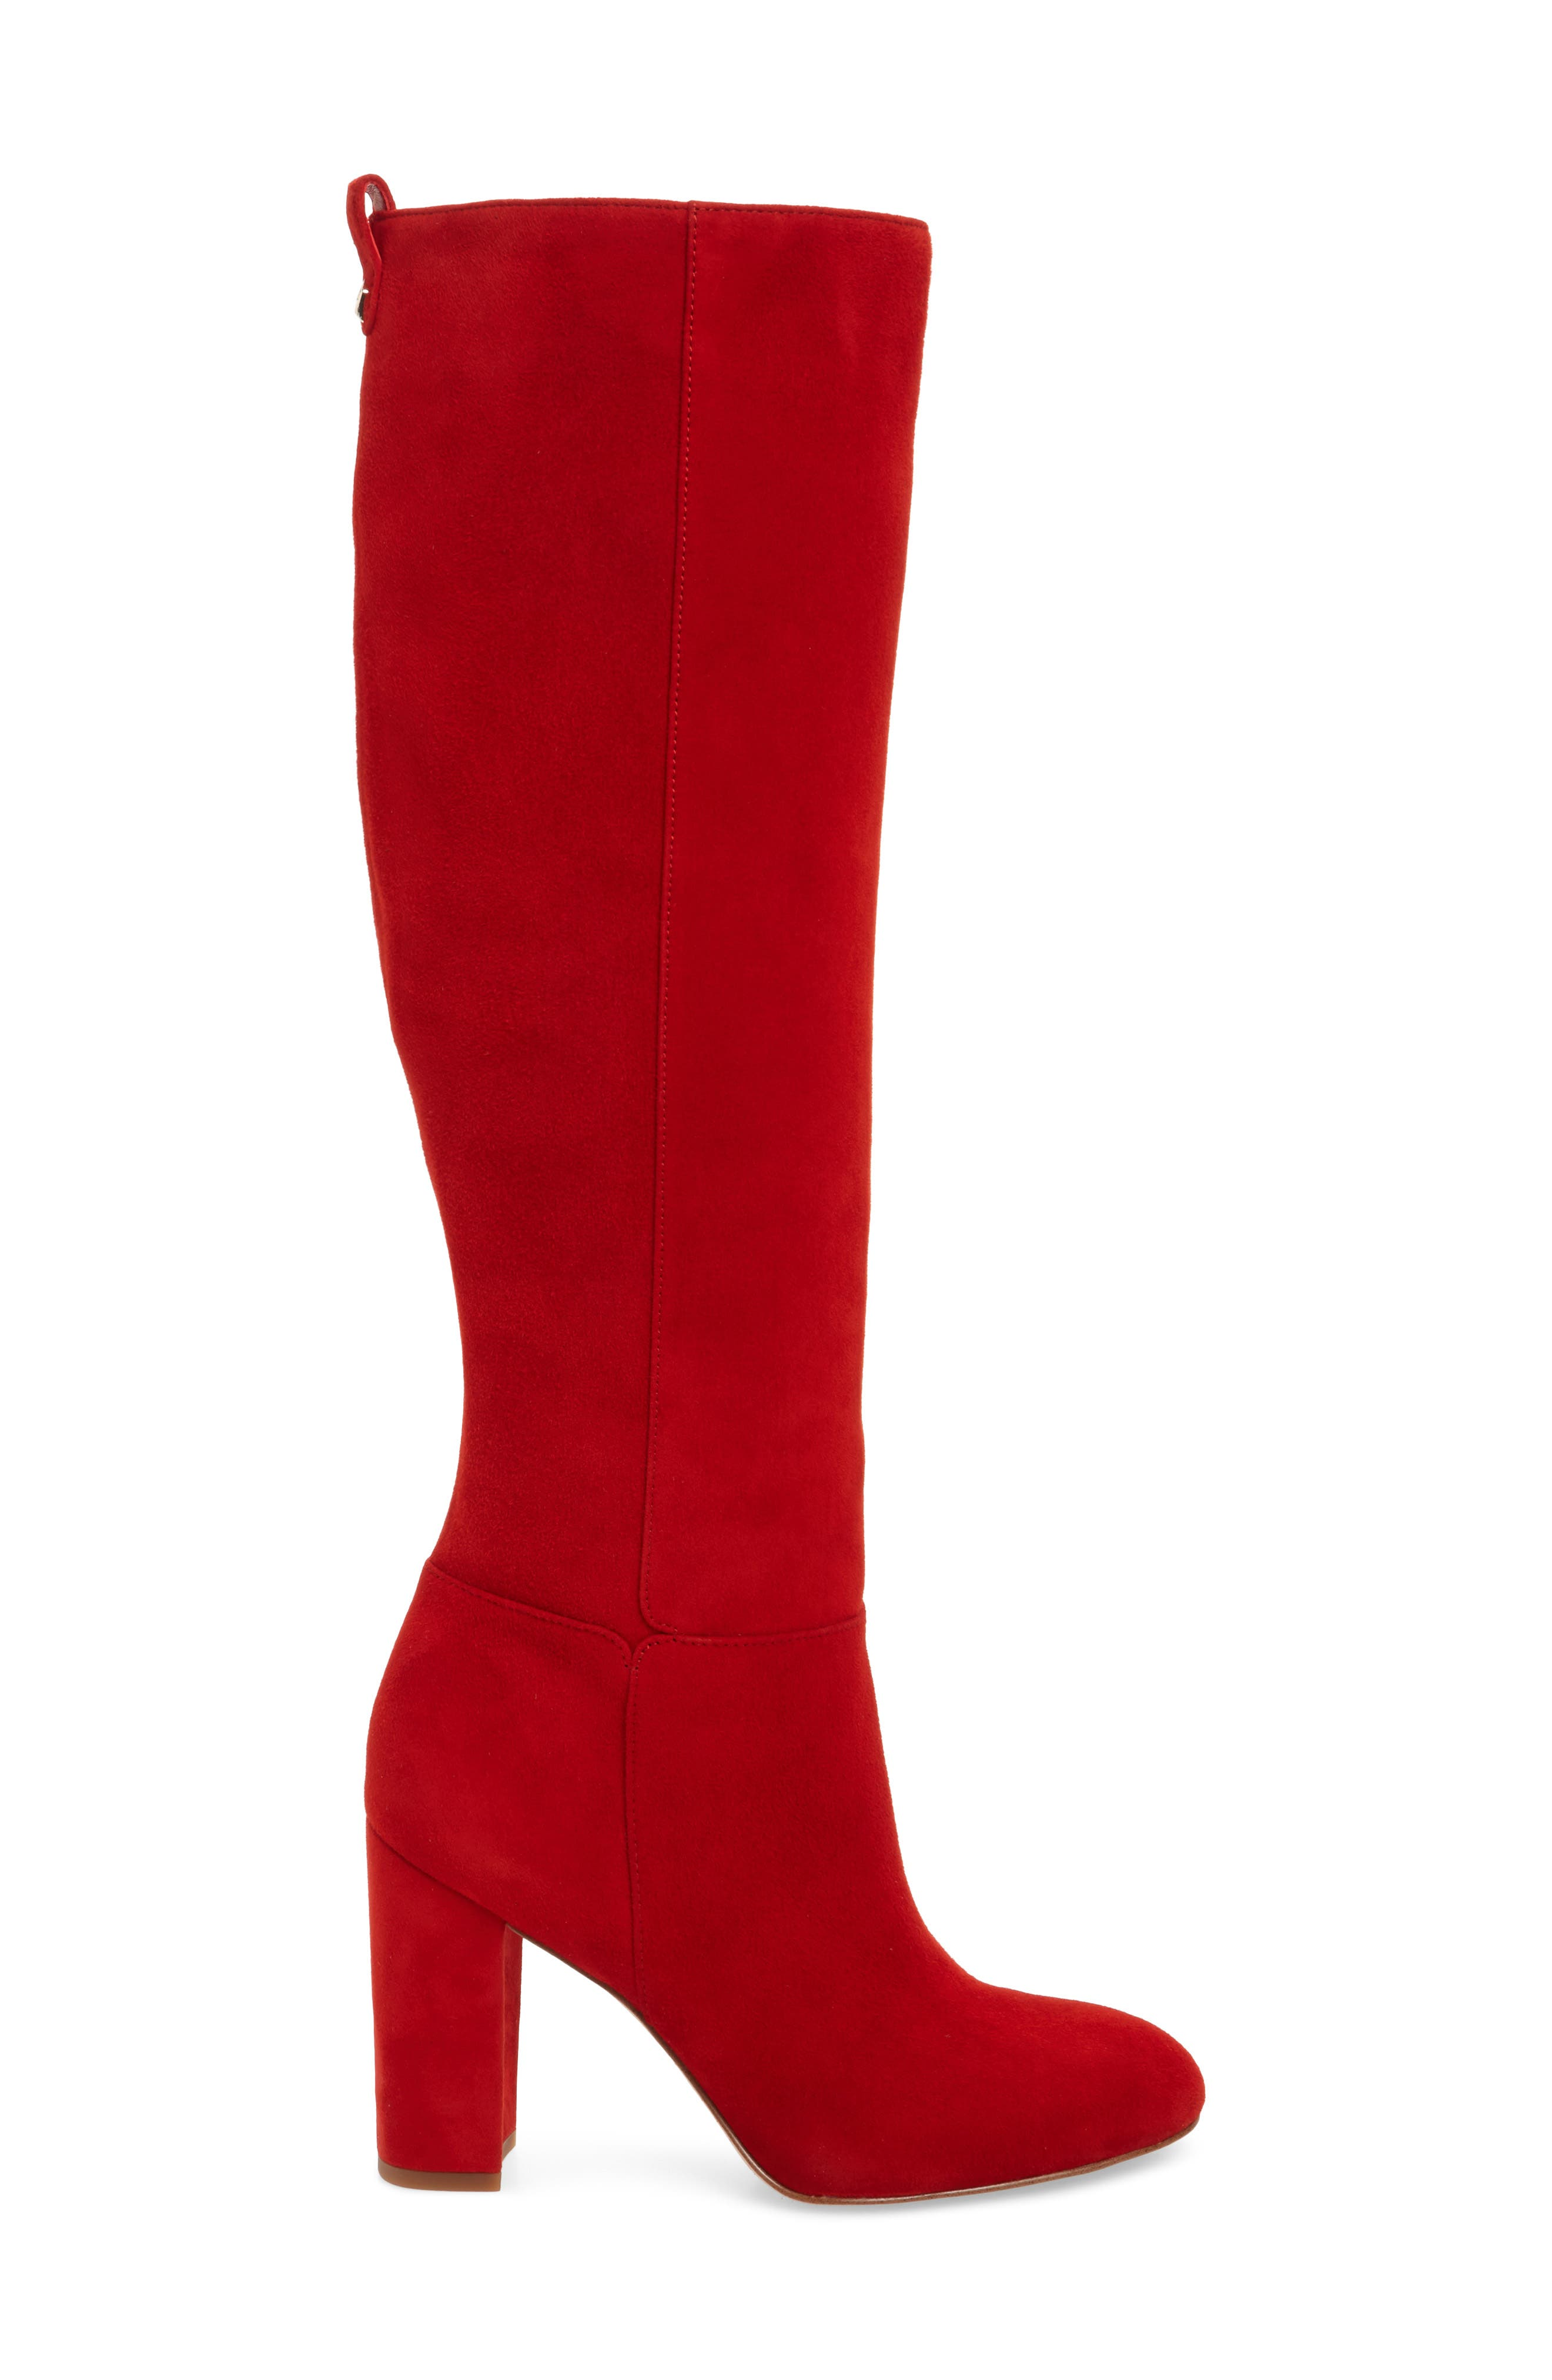 Caprice Knee-High Boot,                             Alternate thumbnail 3, color,                             CANDY RED SUEDE